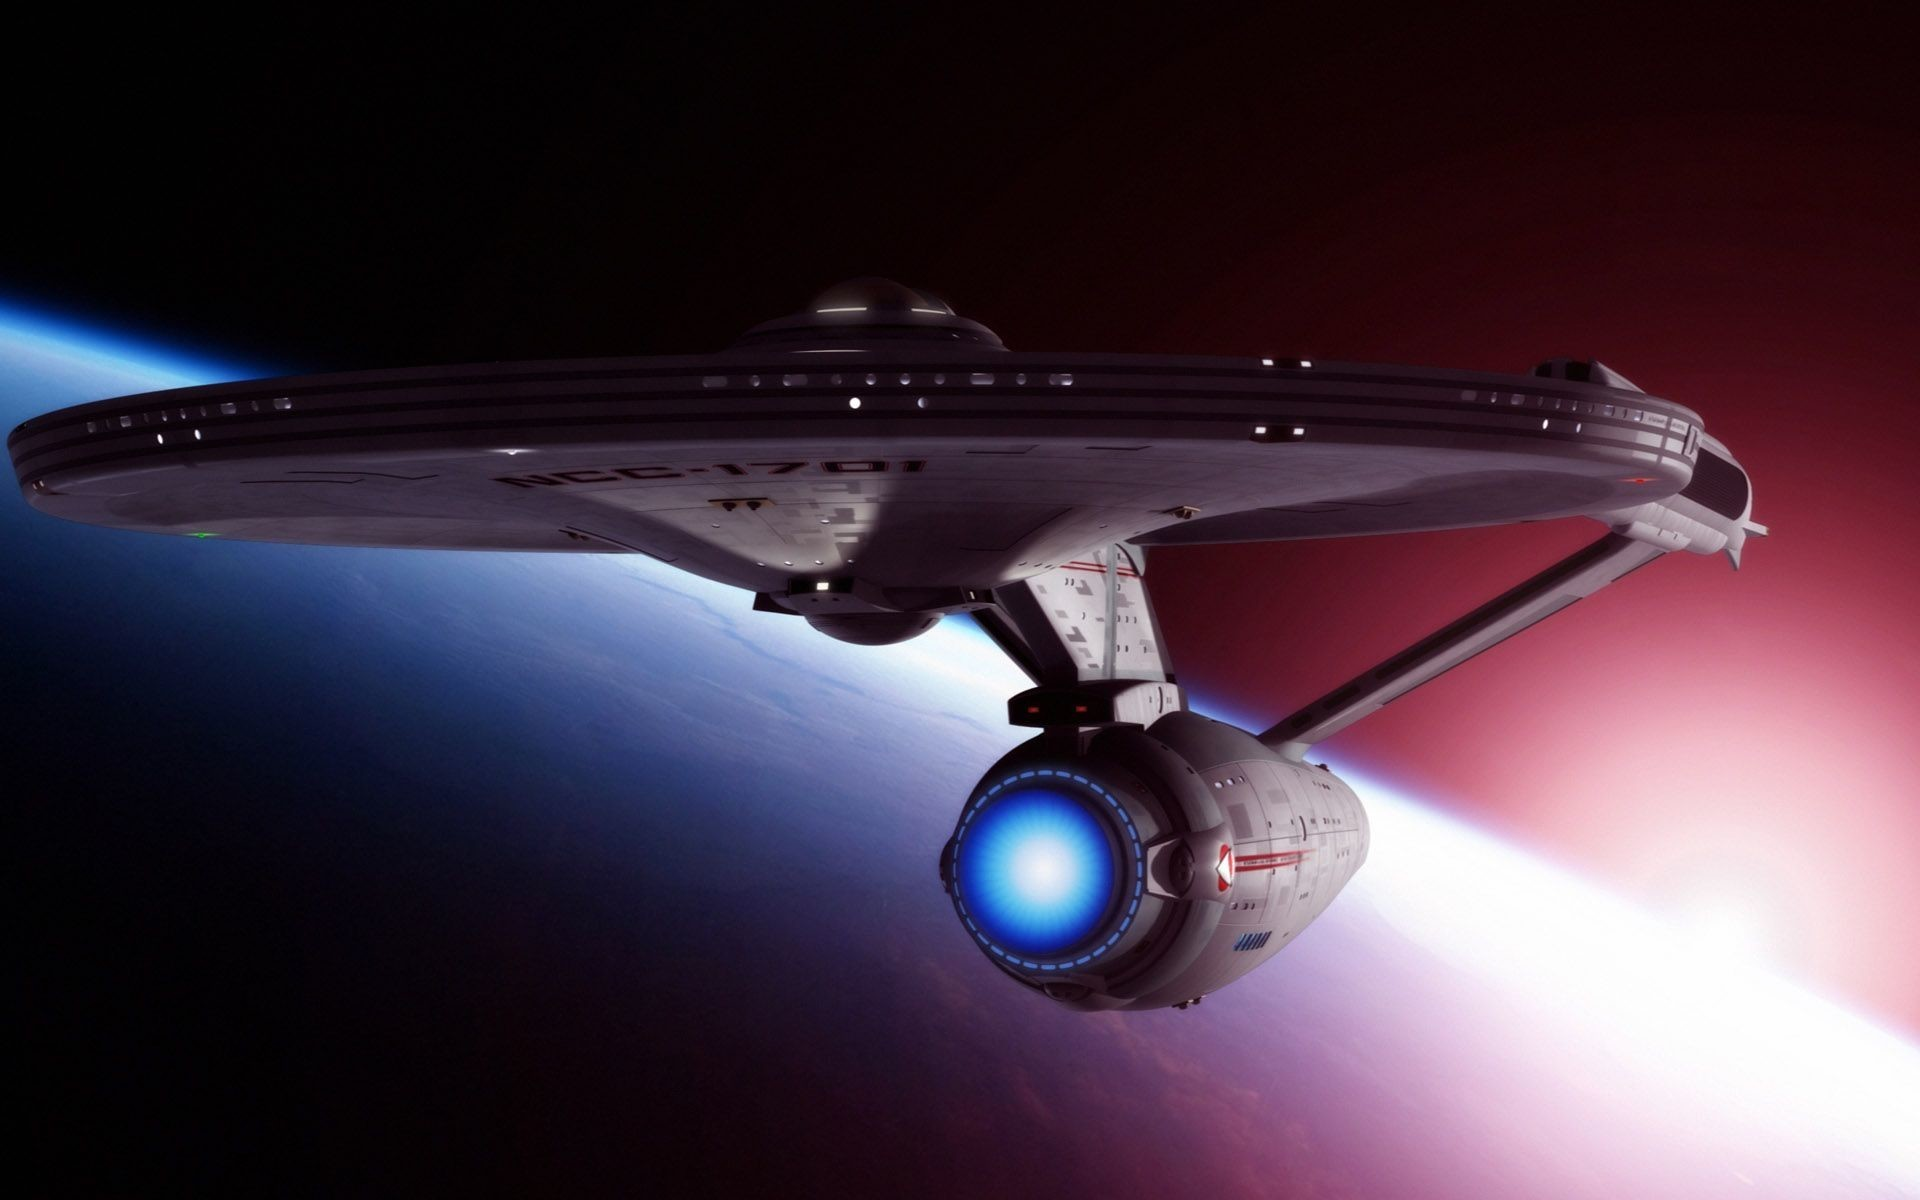 1920x1200 2560x1440 Star Trek HD Wallpapers 16 - 2560 X 1440